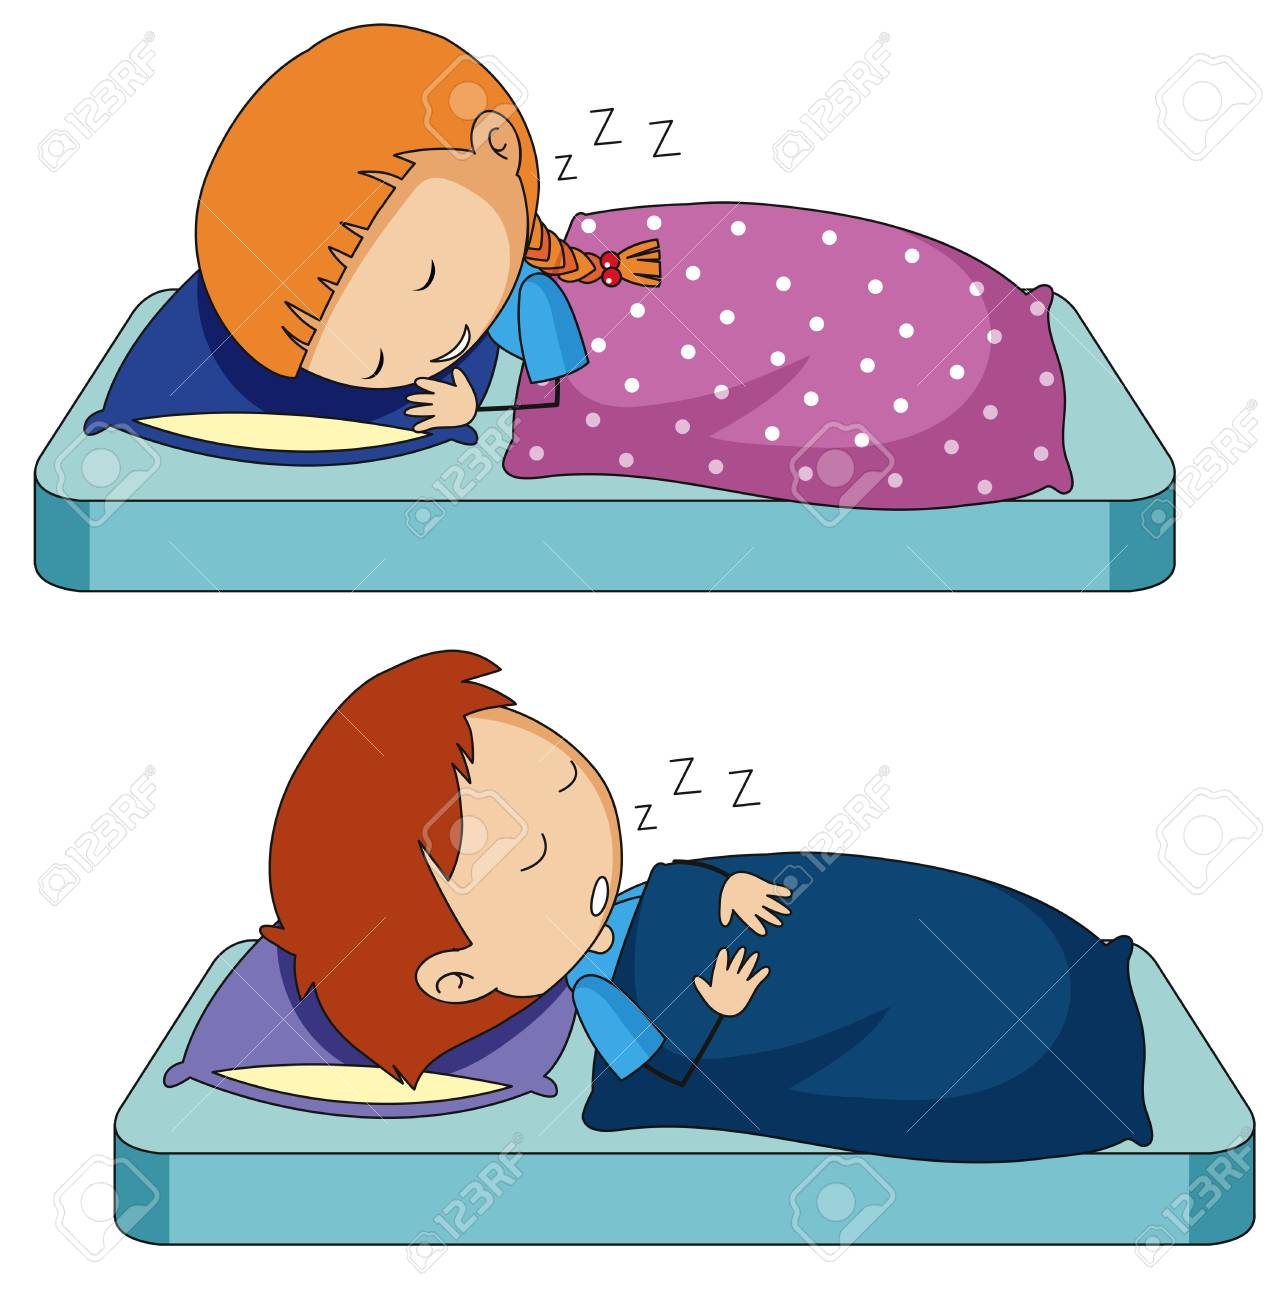 Boy and girl sleeping on bed illustration.